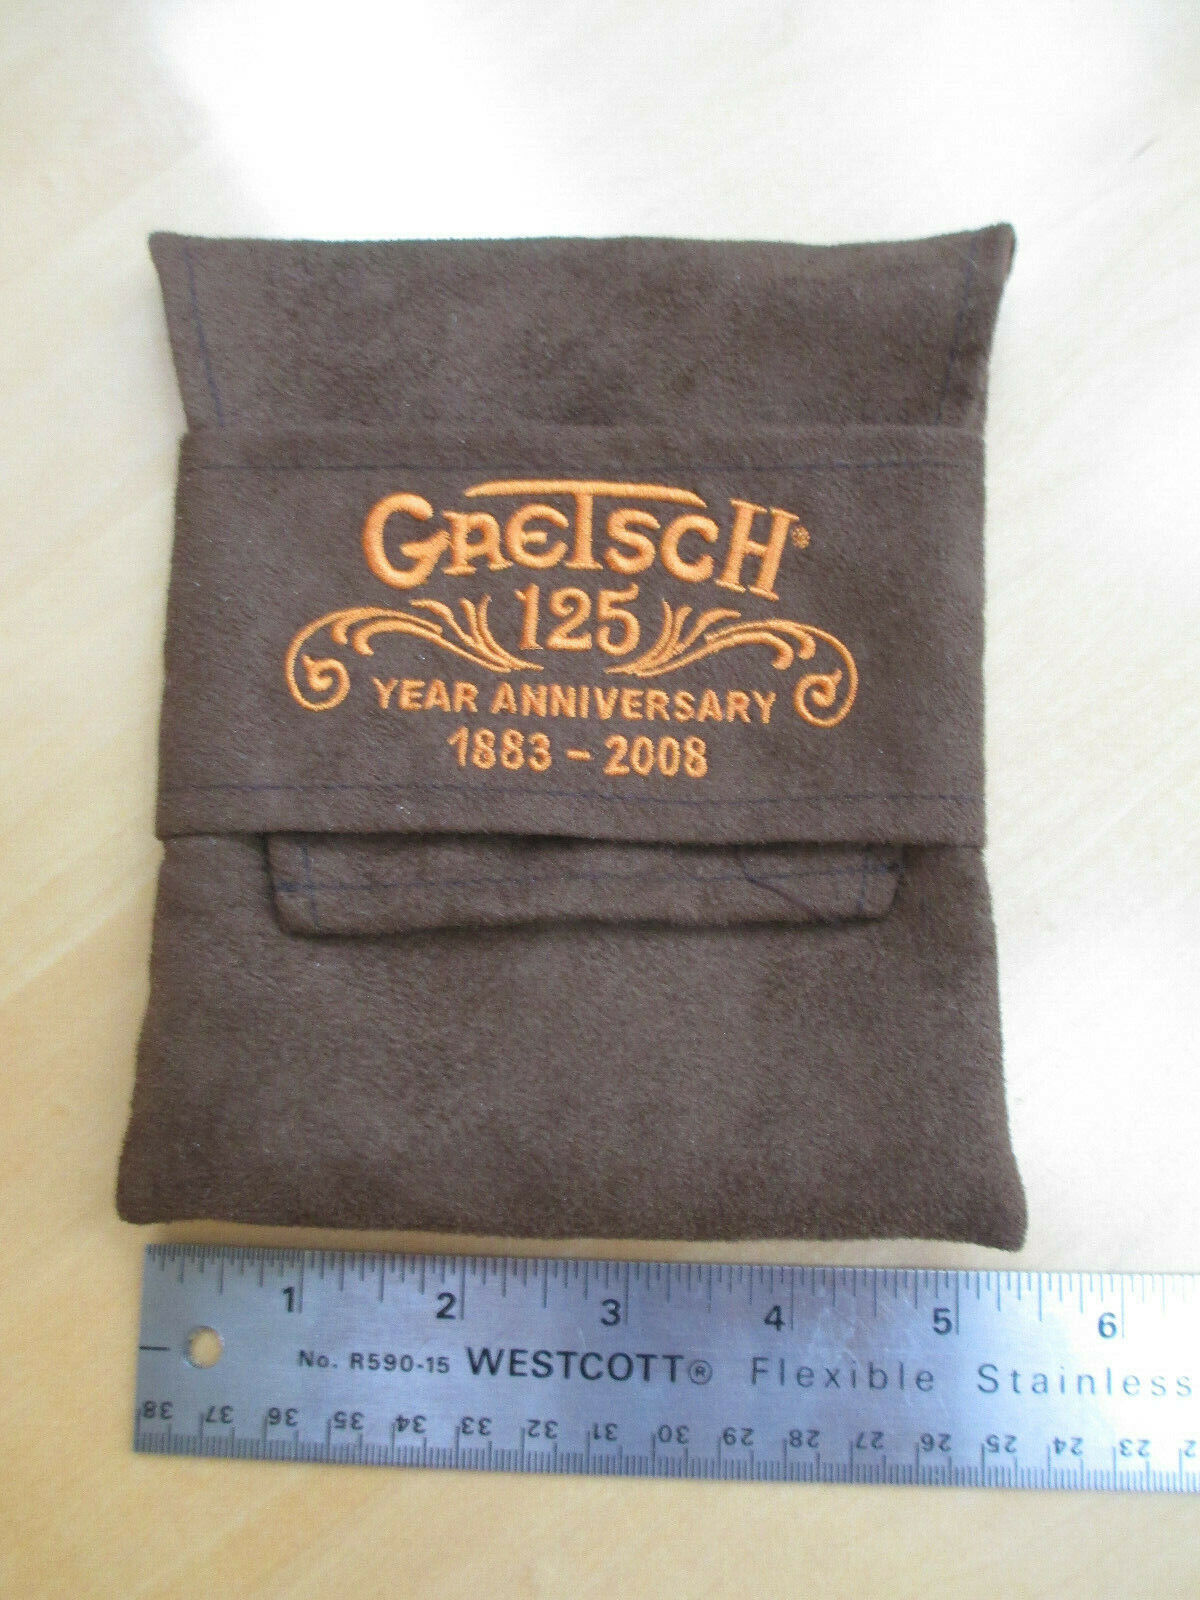 GRETSCH 125th ANNIVERSARY BAG in FAKE SUEDE - GUITAR CASE CANDY - LARGE